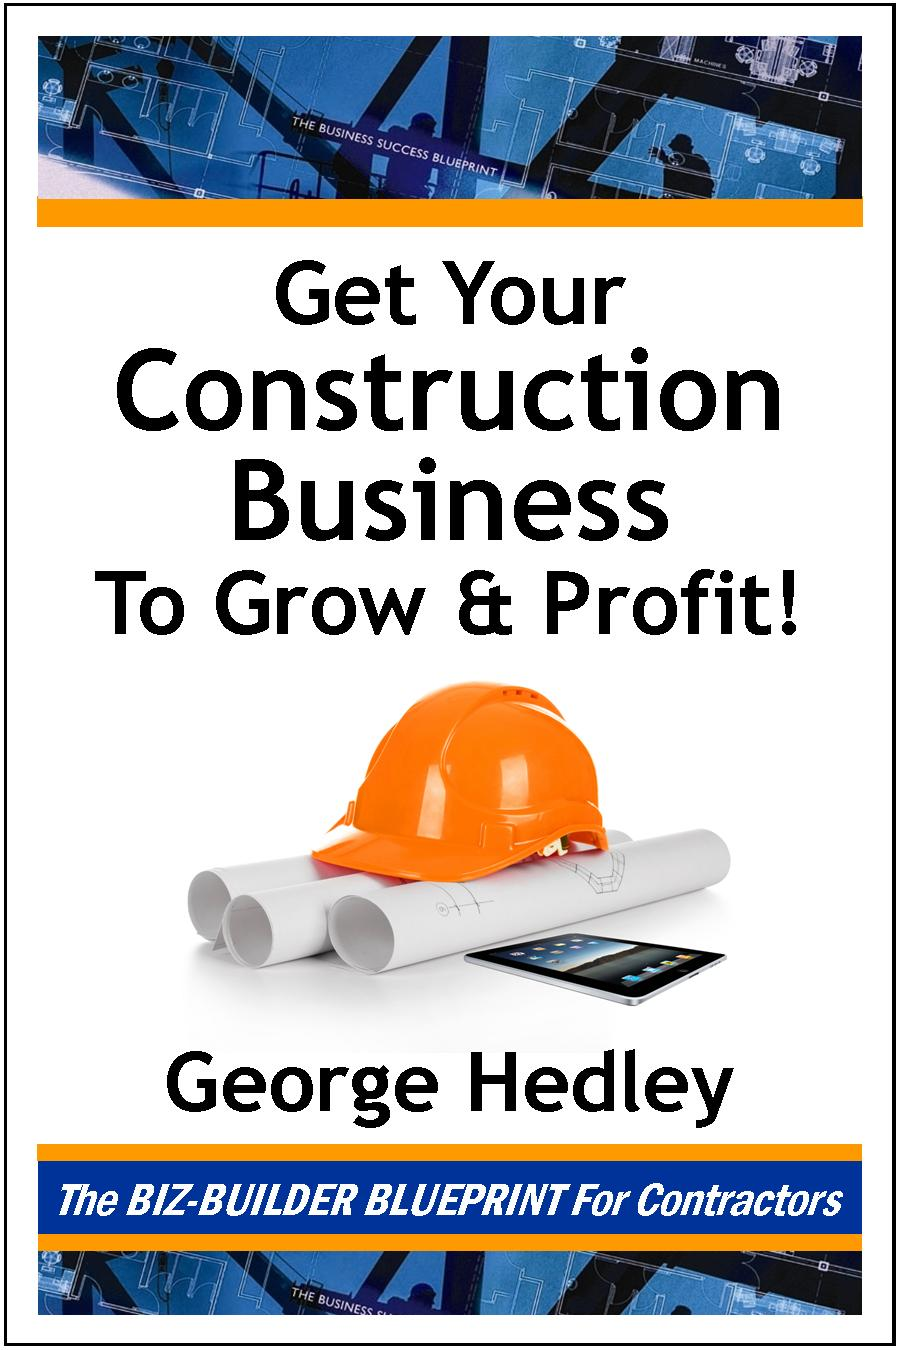 Get Your Construction Business To Grow & Profit